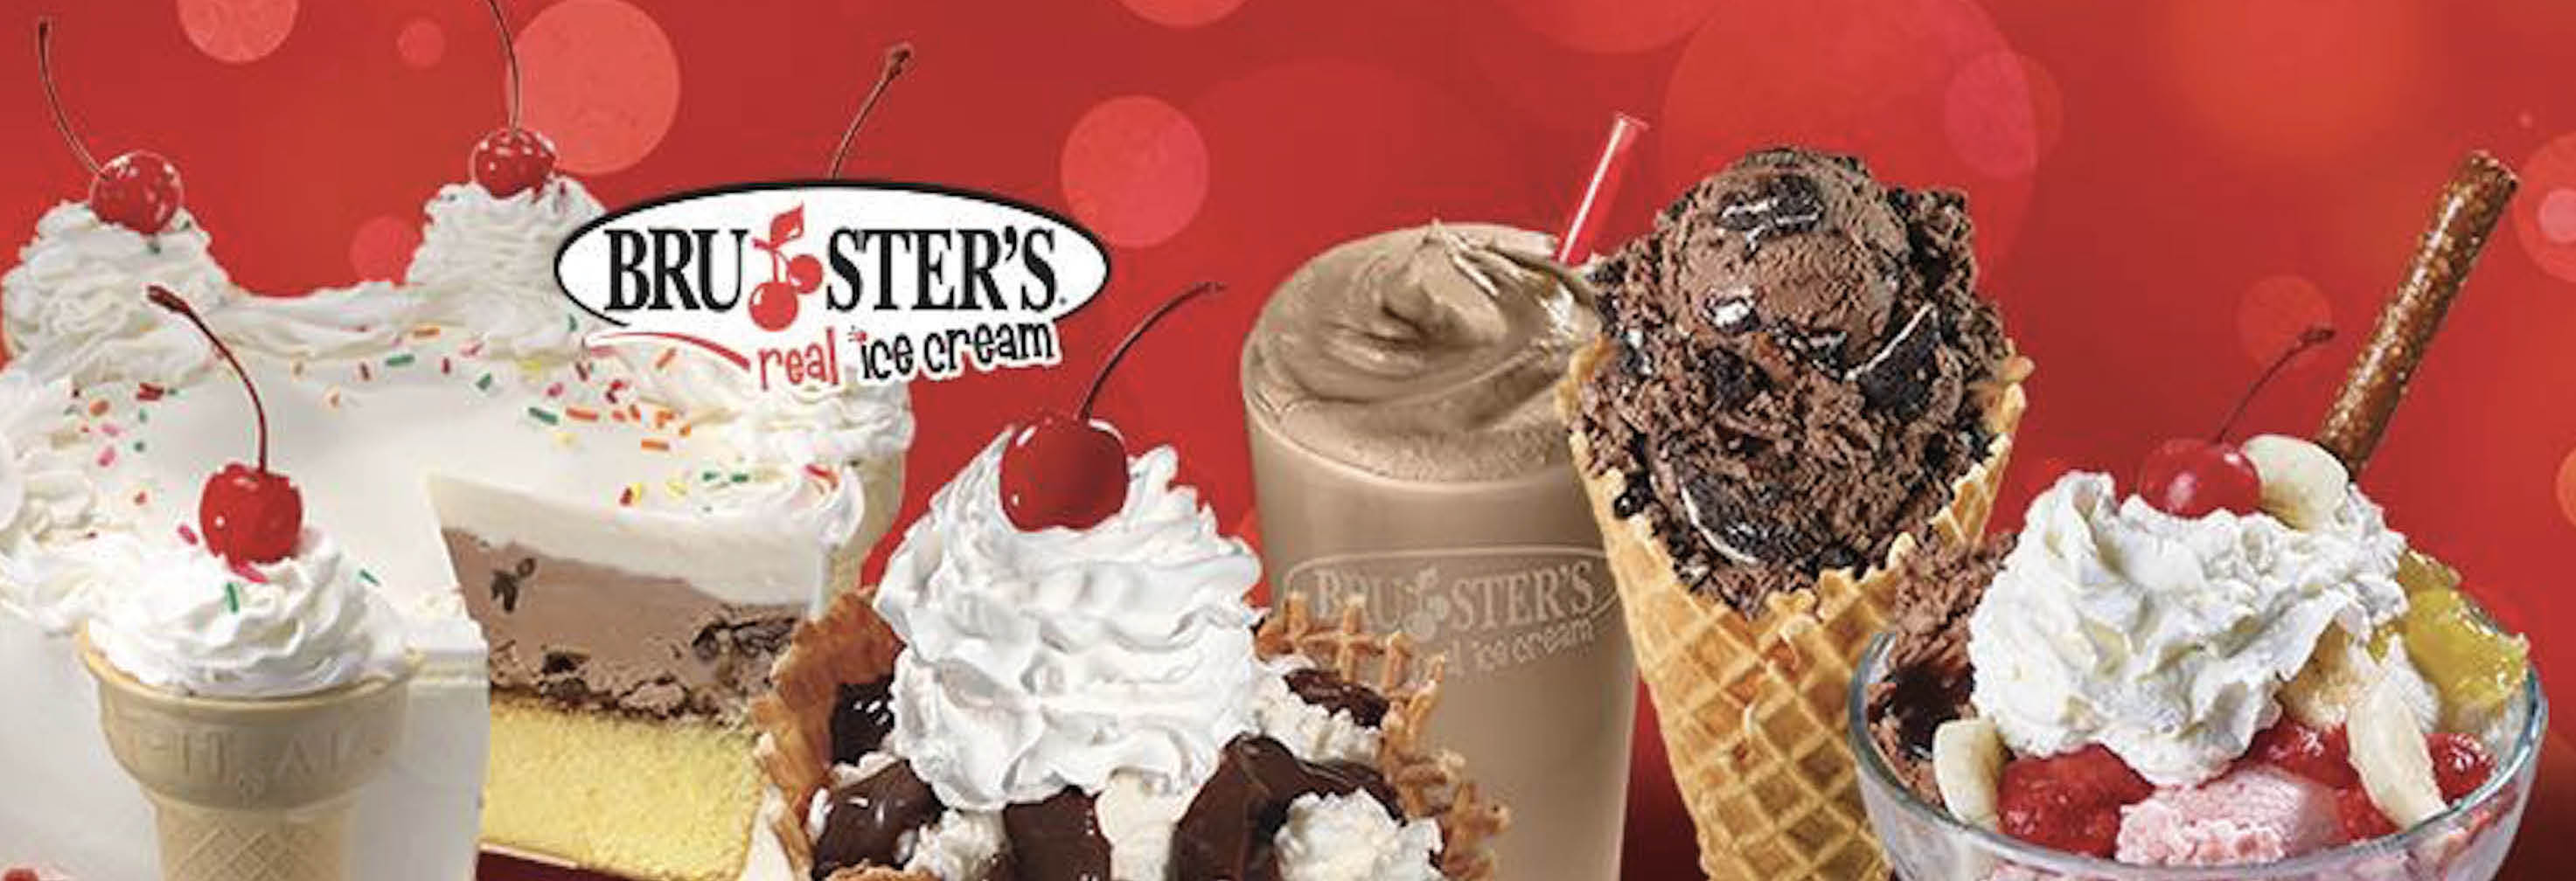 Brusters Ice Cream Limerick, brusters, brusters near me, ice cream, valpak, coupon